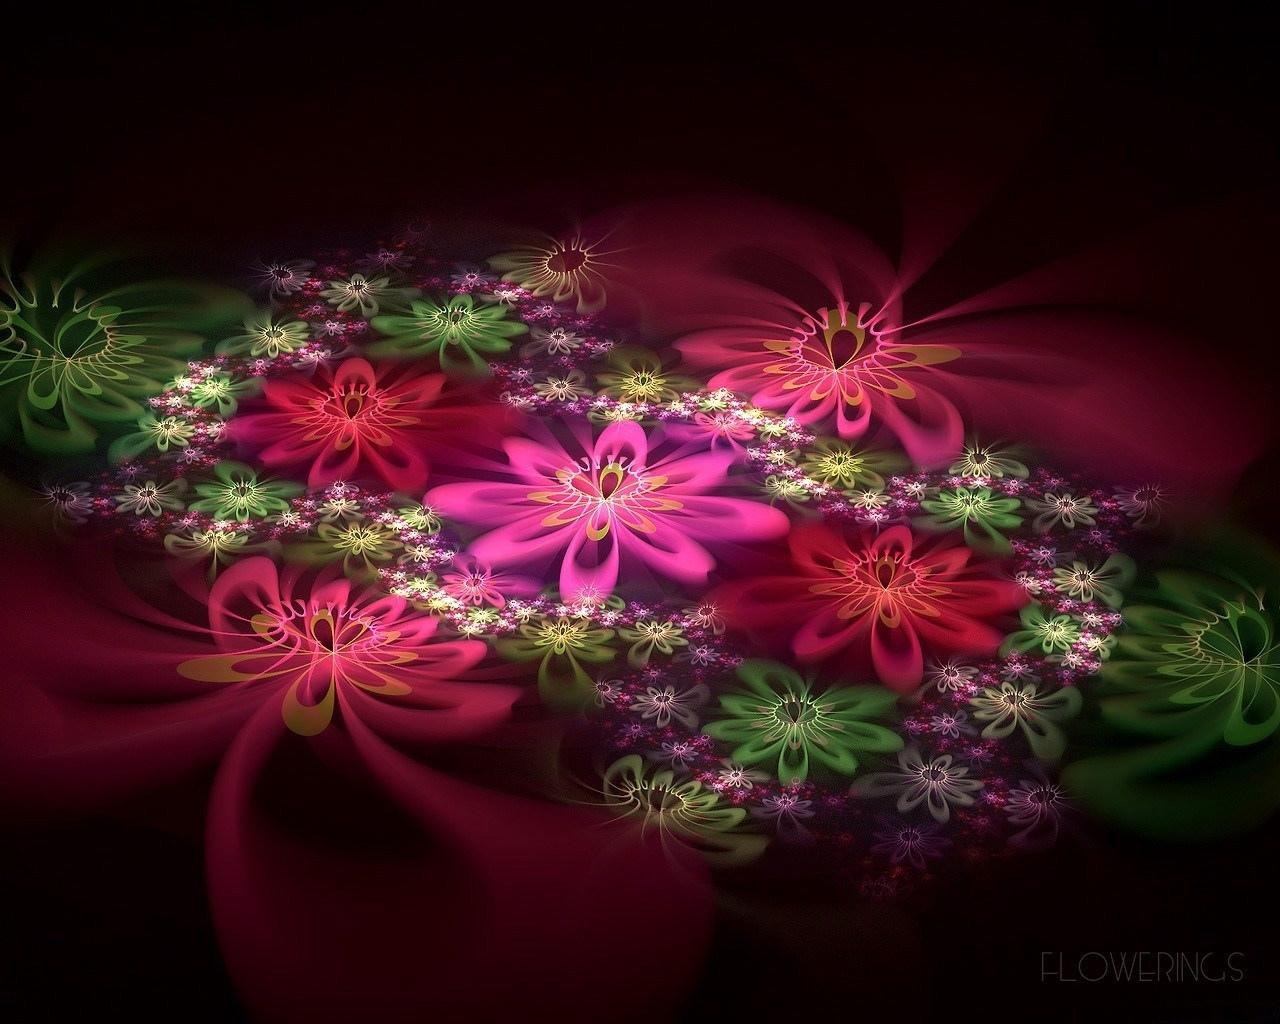 Flower Abstract wallpapers HD quality